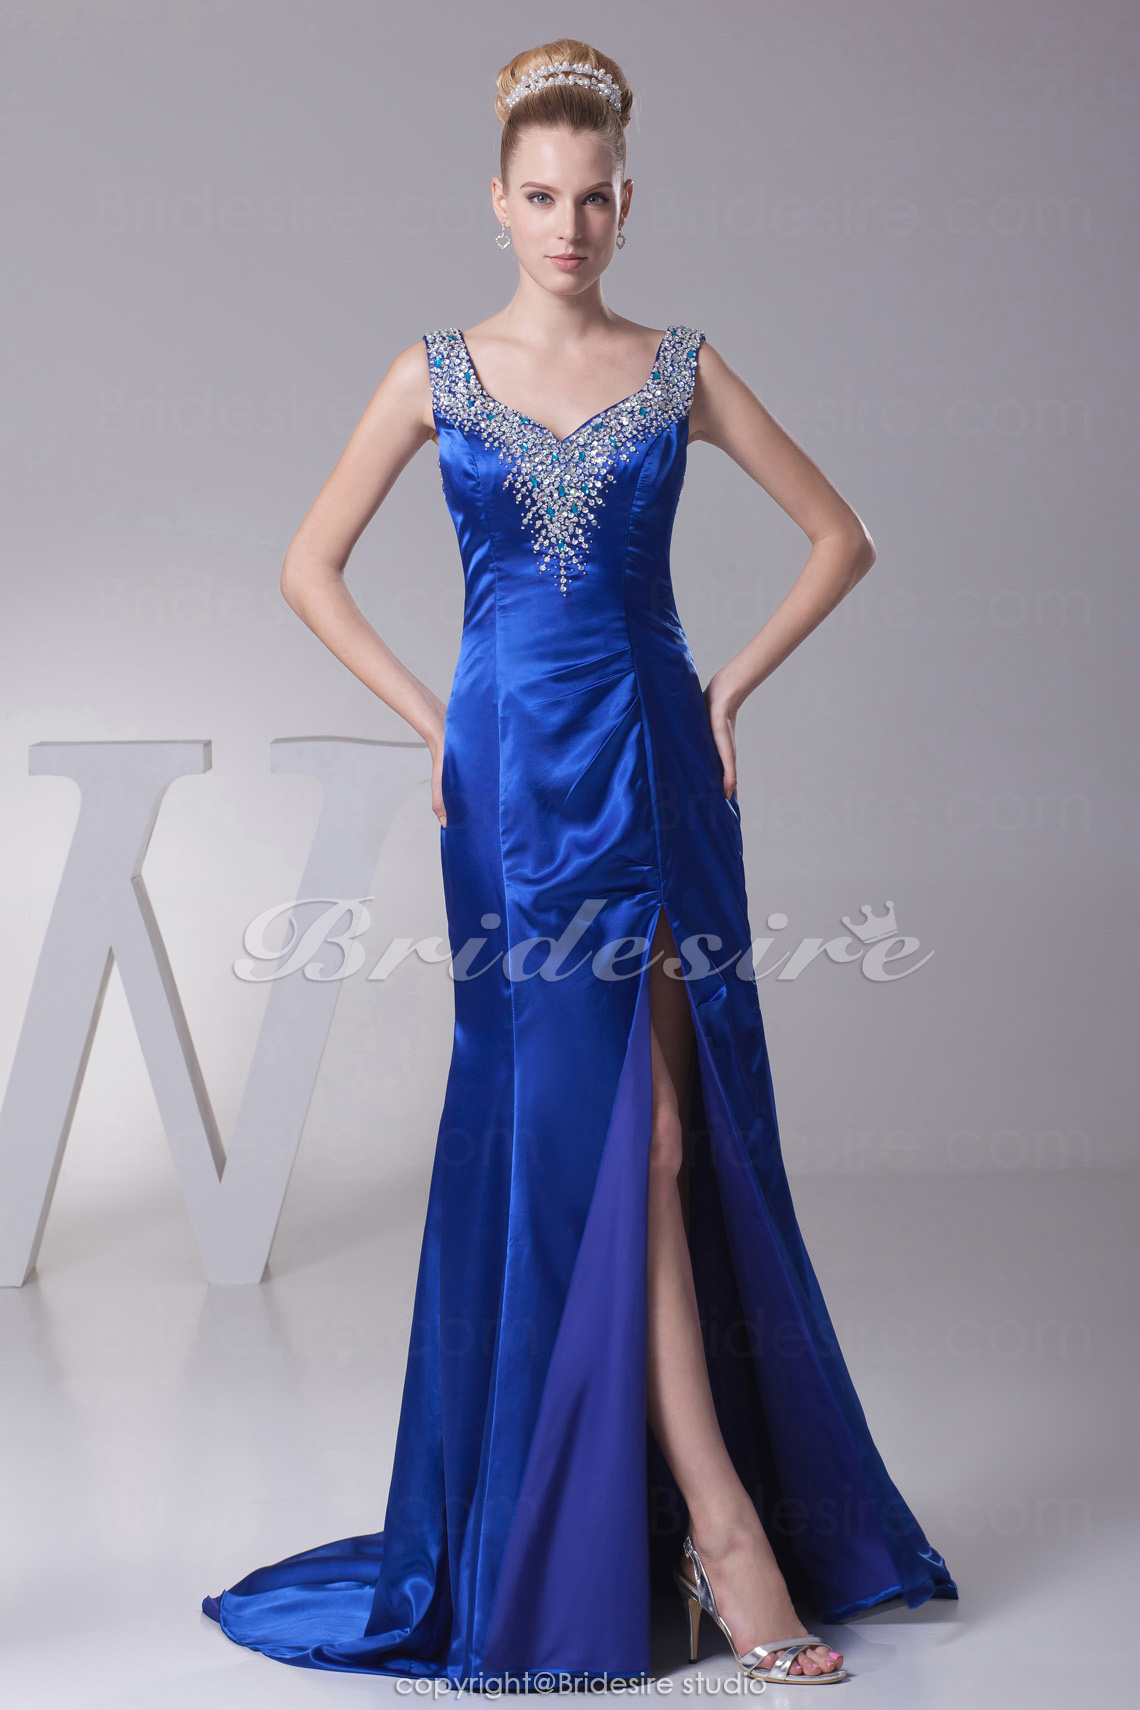 Trumpet/Mermaid Sweetheart Court Train Sleeveless Stretch Satin Dress